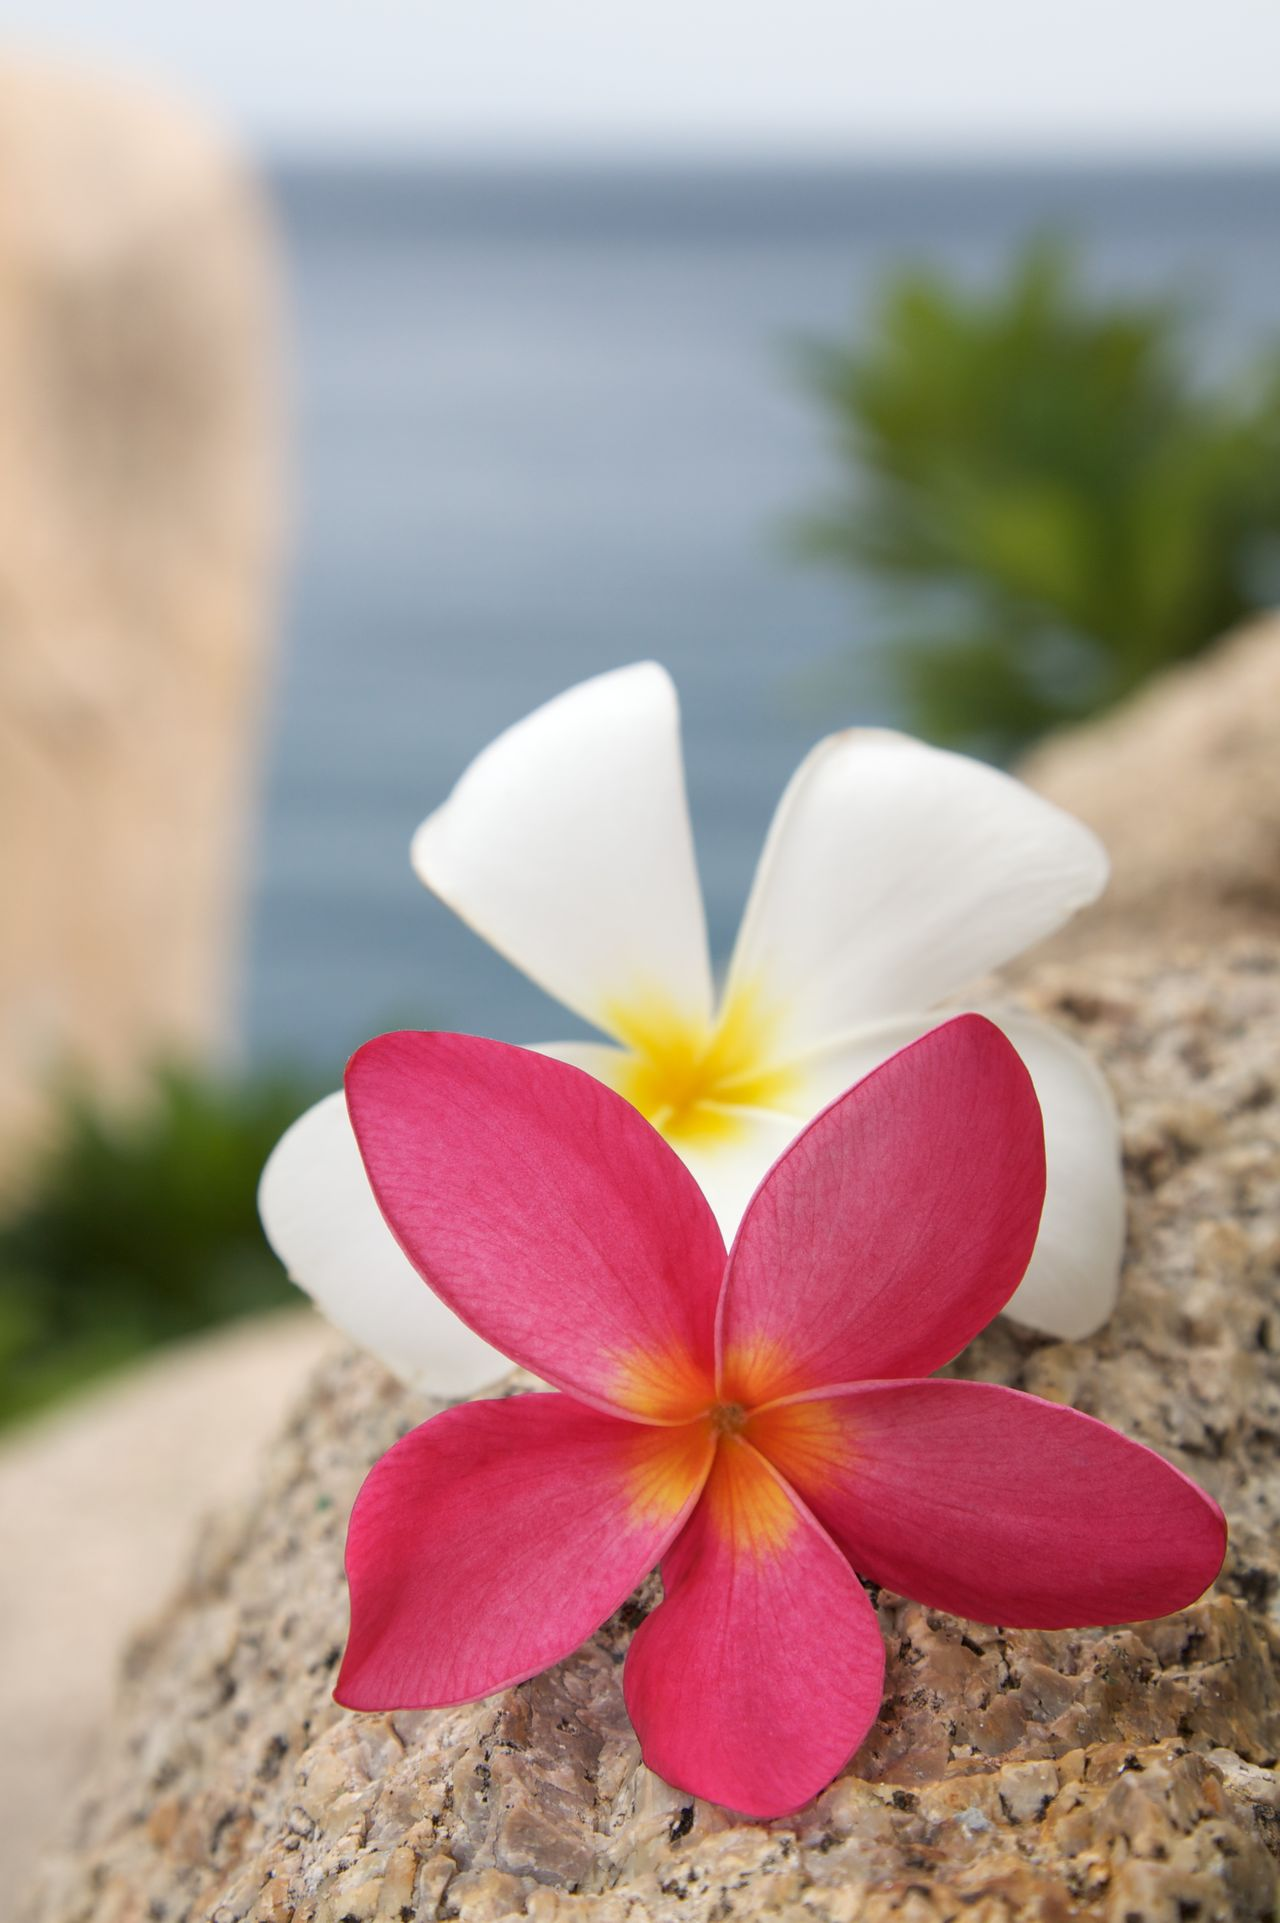 They are not only beautiful - can't get enough of their smell Beach Beauty In Nature Beauty In Nature Beauty Of Nature Blossom Blossoms  Close-up Colorful Colorfull Day Flower Head Focus On Foreground Frangipani Frangipani Frangipani Flower Nature No People Ocean Outdoors Pink Color Plumeria Plumeria Flowers Rocks White Flower